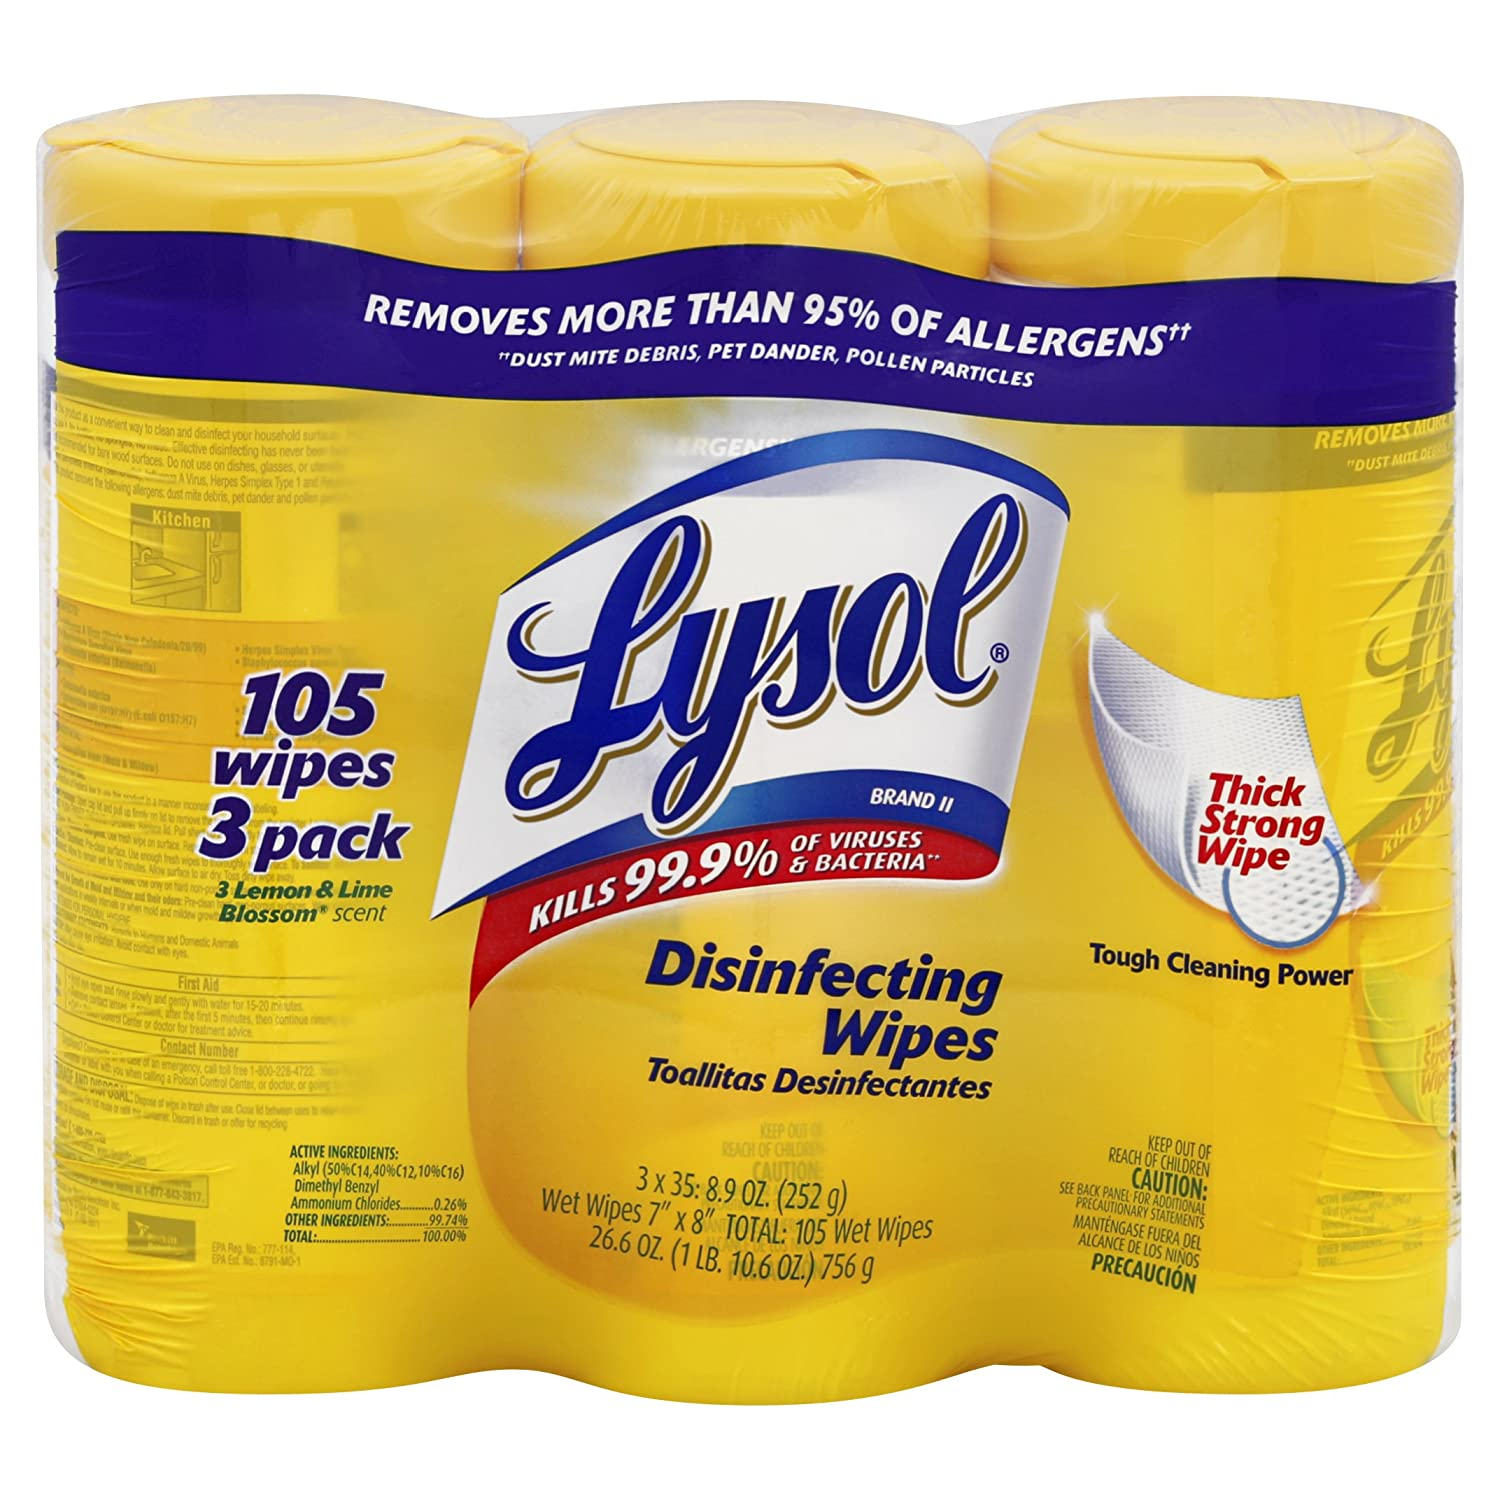 Lysol Disinfecting Wipes, Lemon and Lime Blossom Triple Pack, 3 – 35 Wet Wipe Cannisters $3.19